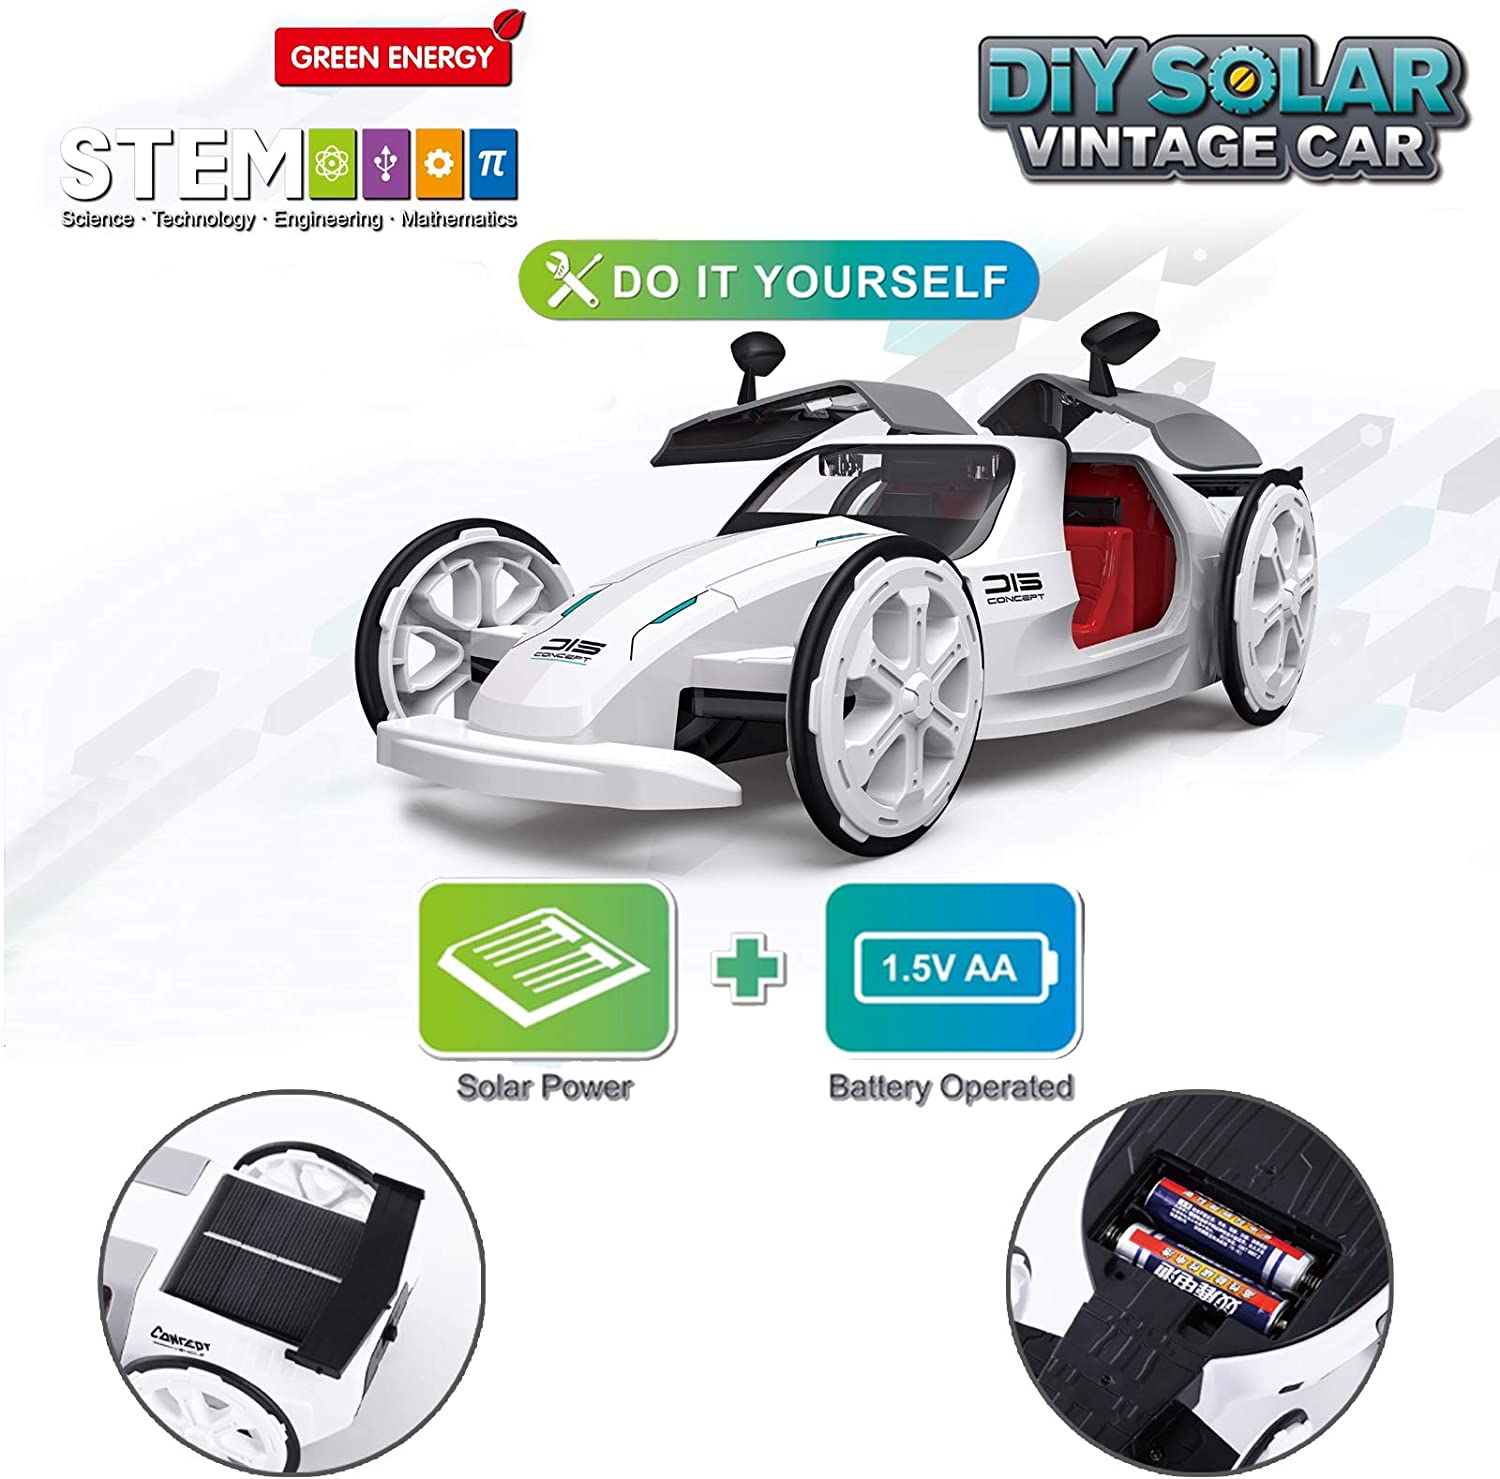 Years Old Kids STEM Eco-Engineering Science Assembly Vehicle with Openable Car Doors Masefu DIY Solar and Battery Powered Car Toy Power by Sun Educational Experiment Building Car Kit for Kids 6